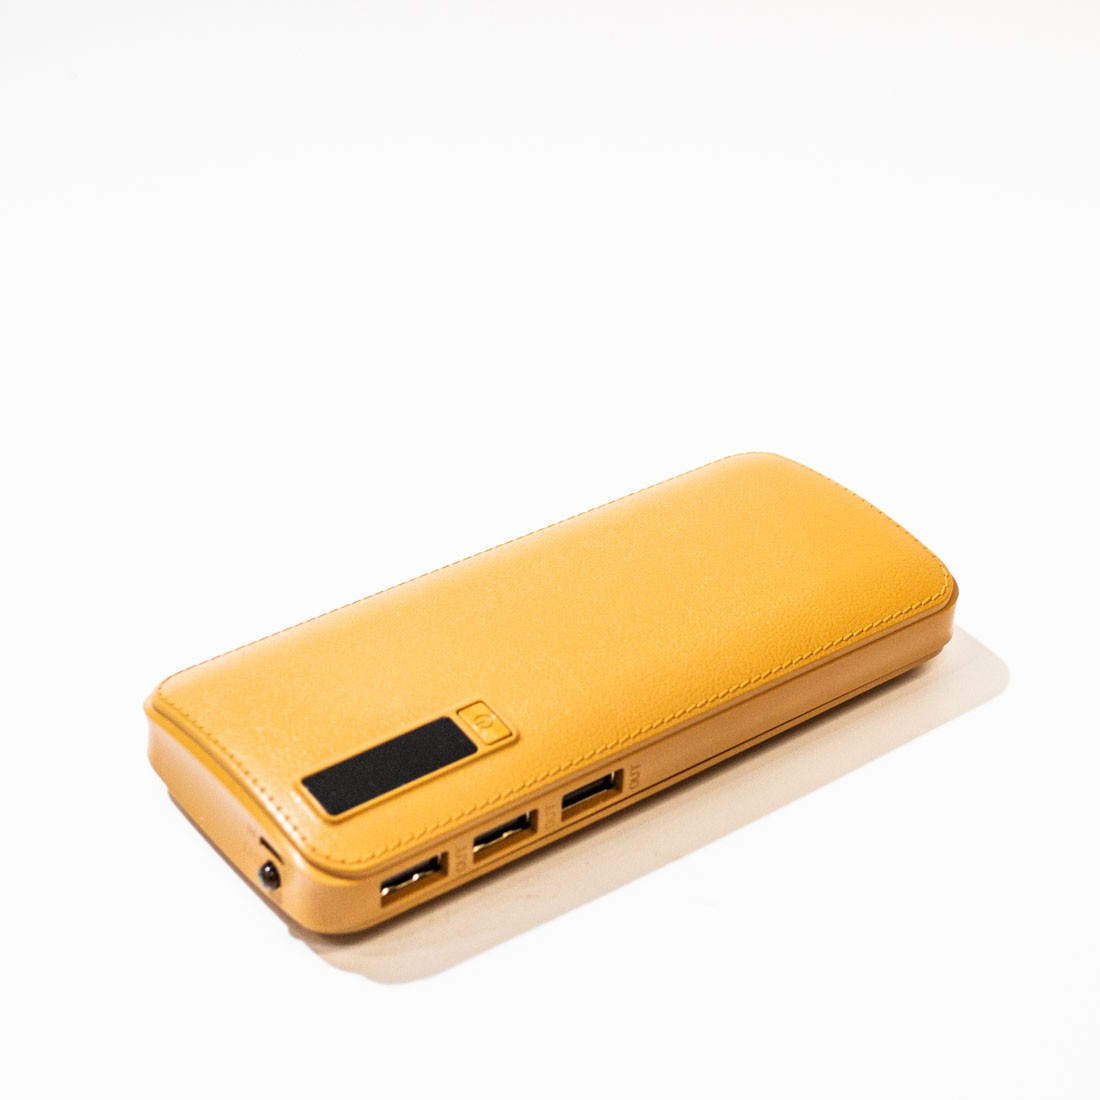 Power Bank 20000mAh LCD-display (Yellow) оптом